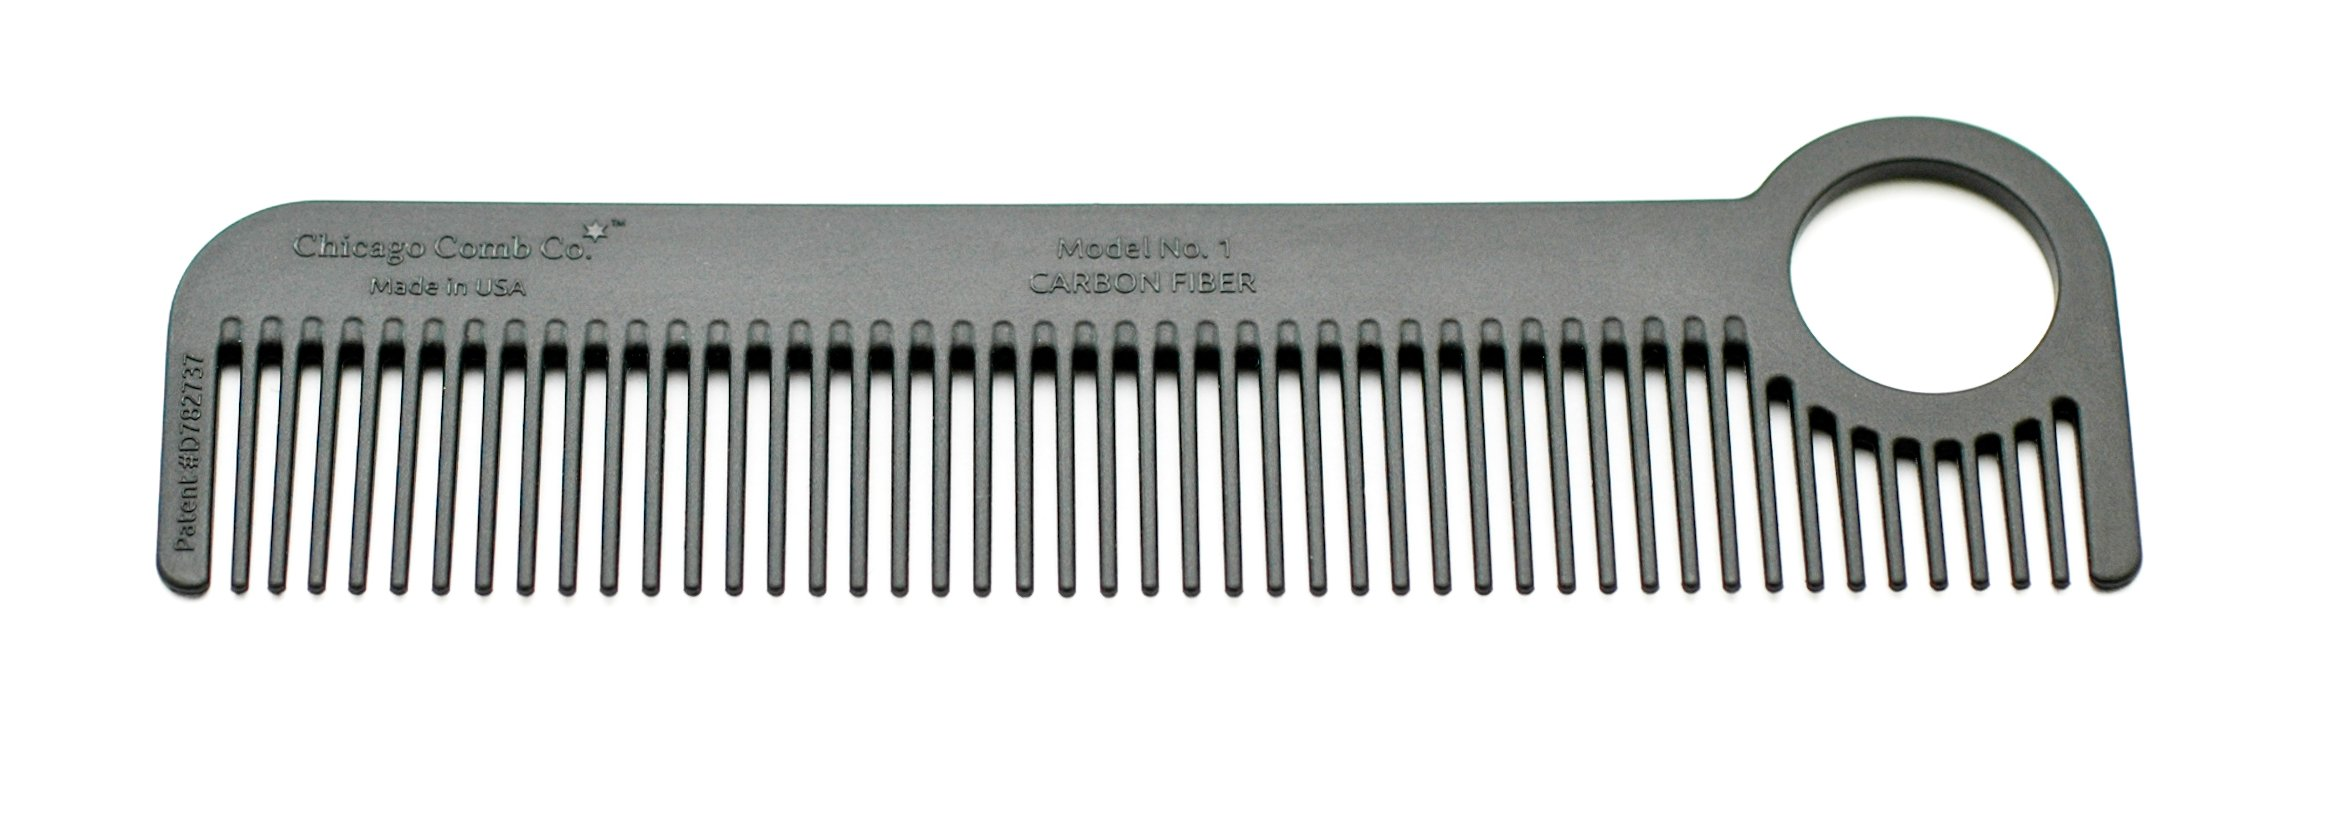 Chicago Comb Model 1 Carbon Fiber, Made in USA, ultra smooth, strong, and light, anti-static, heat-resistant, 5.5 inches (14 cm) long, ultimate daily use, pocket, and travel comb by Chicago Comb